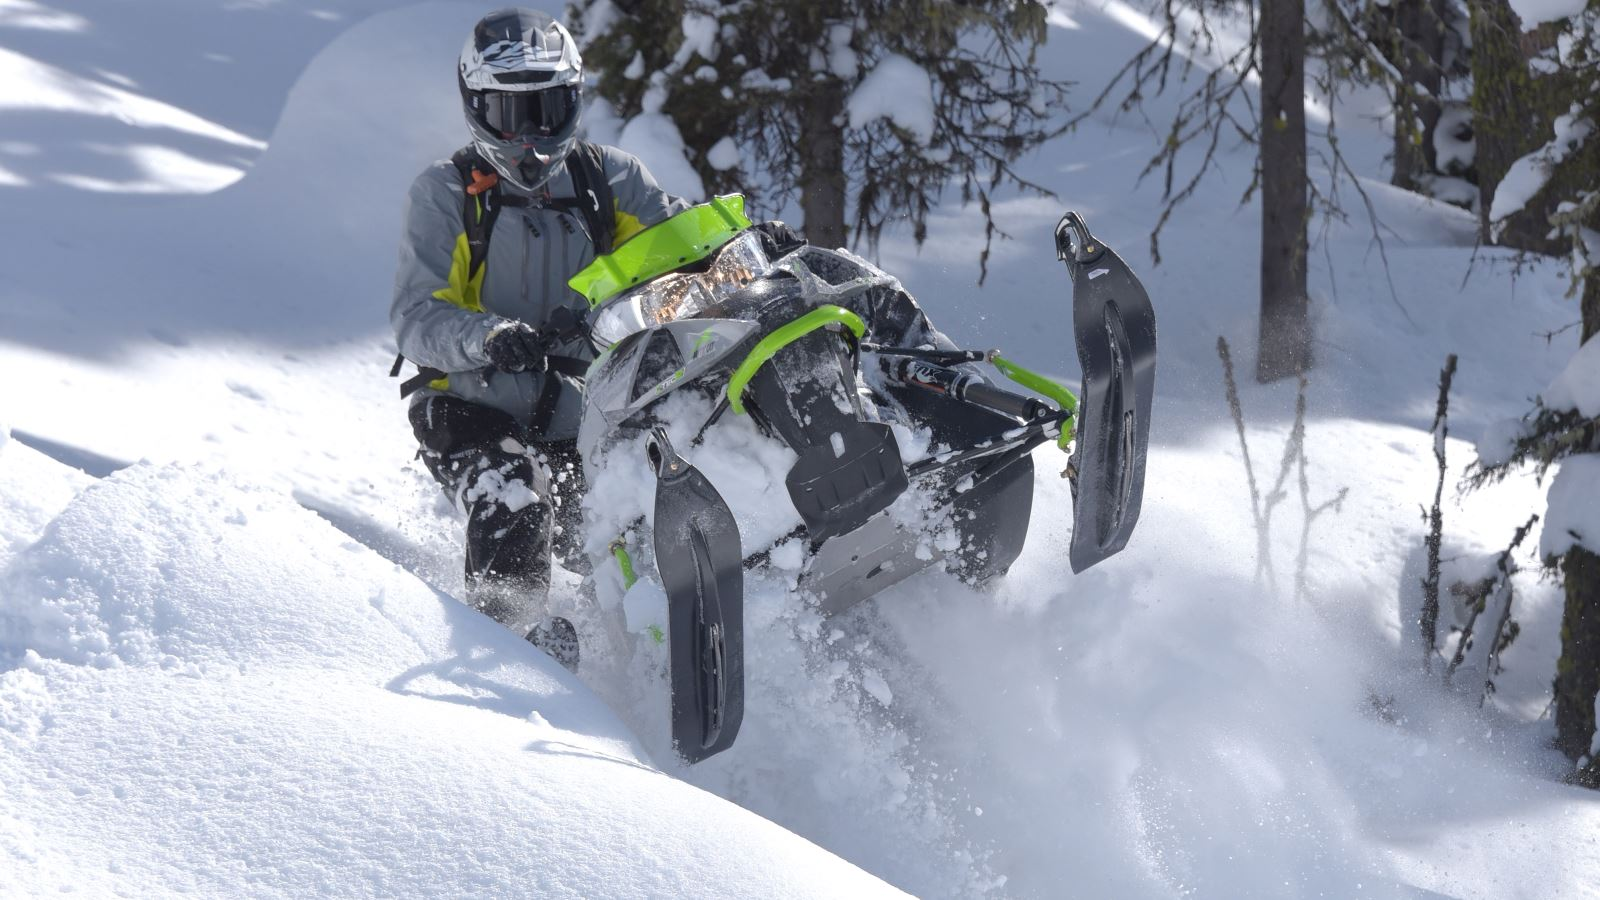 The 2018 Sno Pro Might Look Very Similar We Ure You It S Not